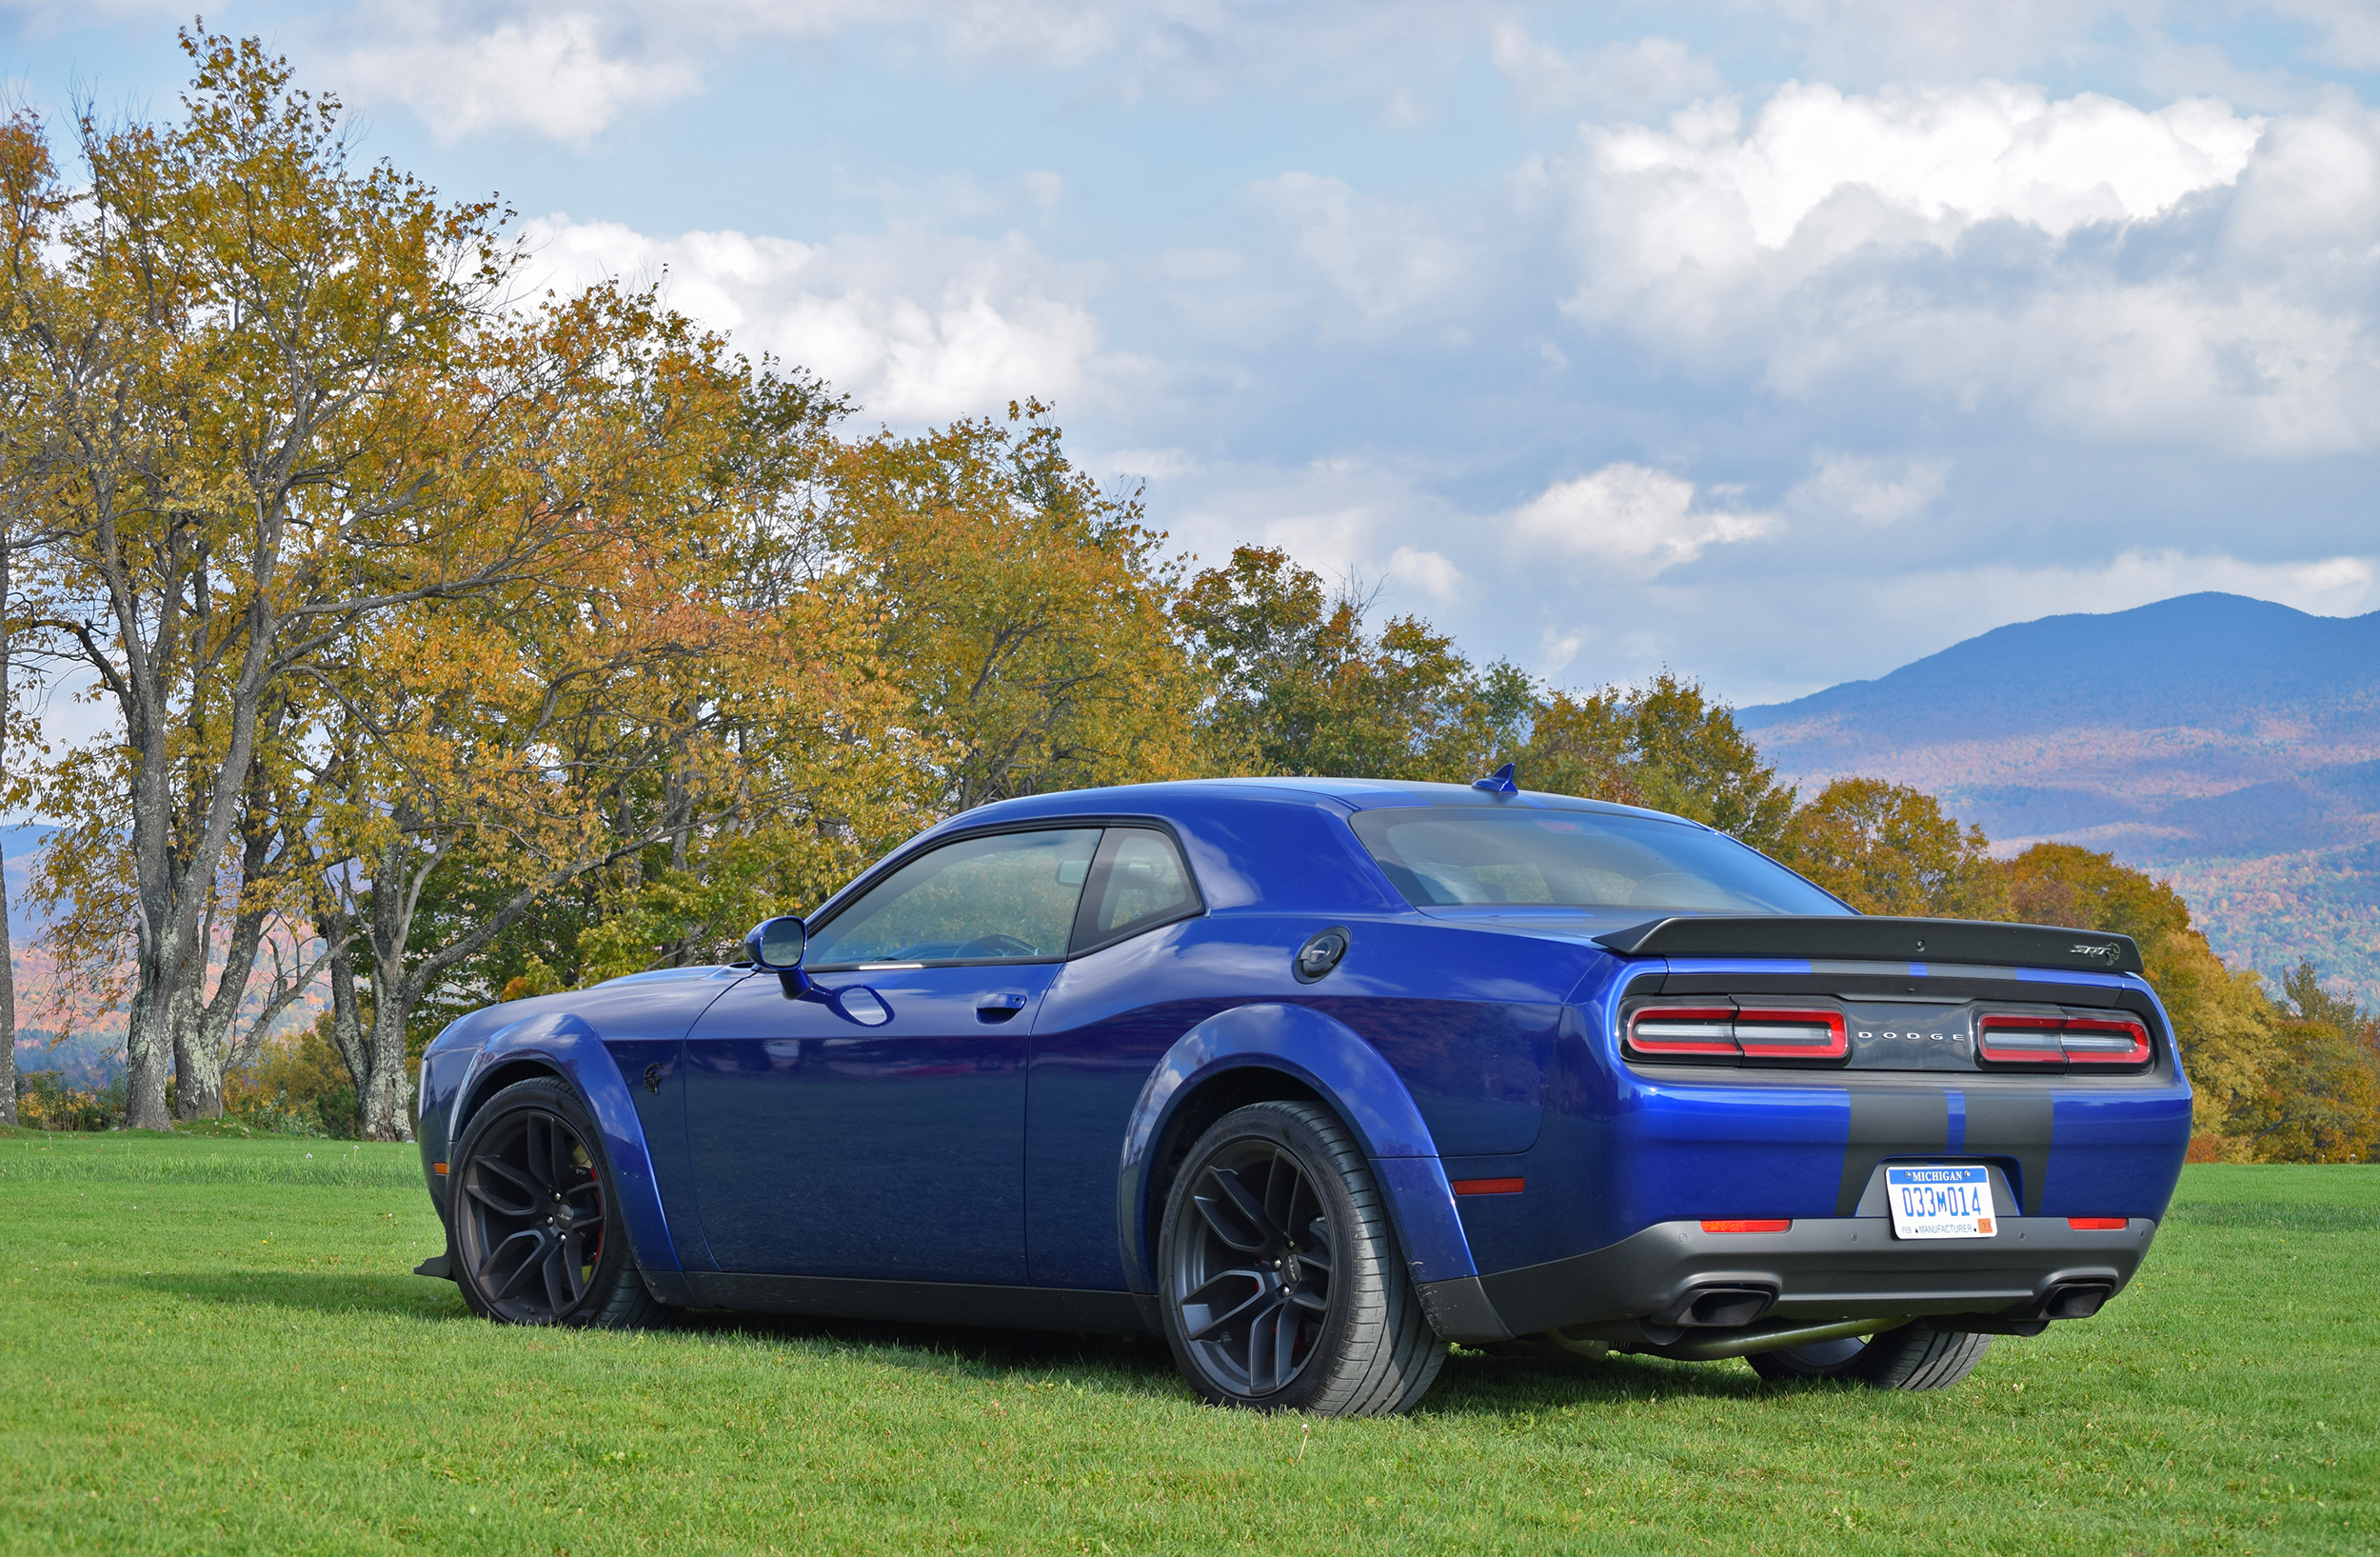 2019 Dodge Challenger Srt Hellcat Redeye Test Drive Review The Jack Reacher Of Muscle Cars